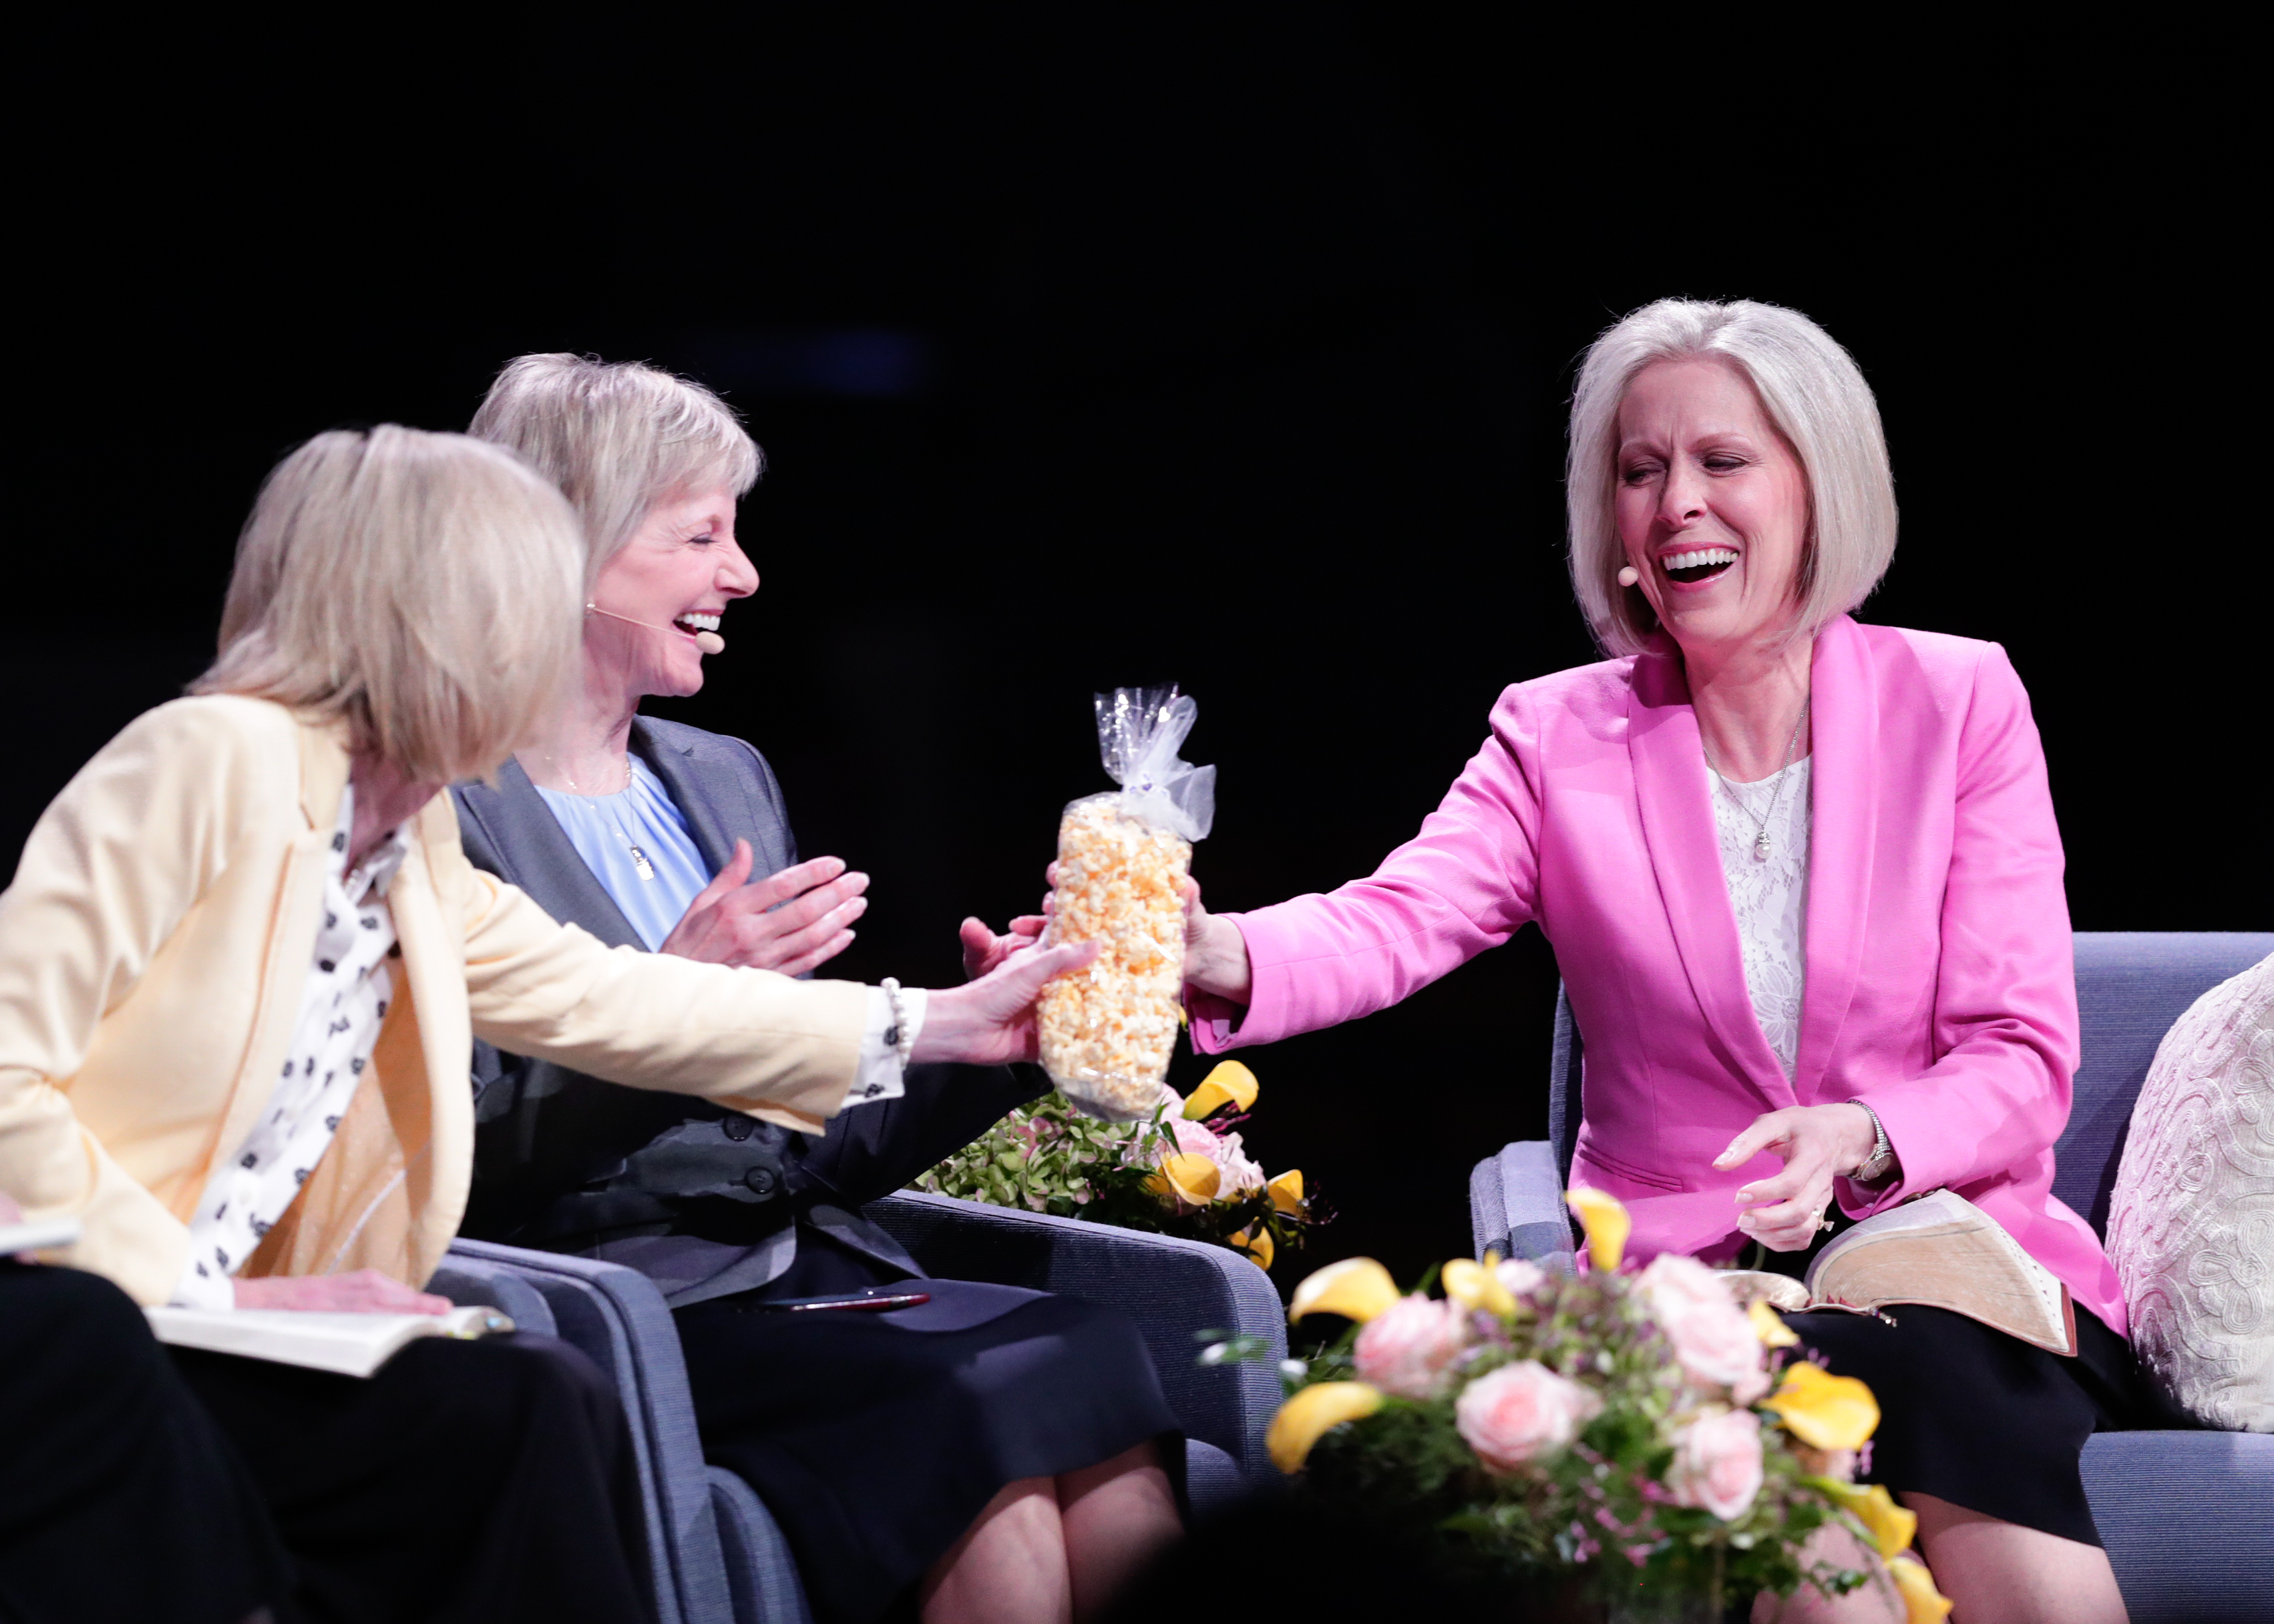 Sister Bonnie H. Cordon gives Sister Joy D. Jones a bag of popcorn during the first Sister-to-Sister event during the 2019 BYU Women's Conference, held in the Marriott Center at BYU in Provo, Utah, on May 3, 2019.